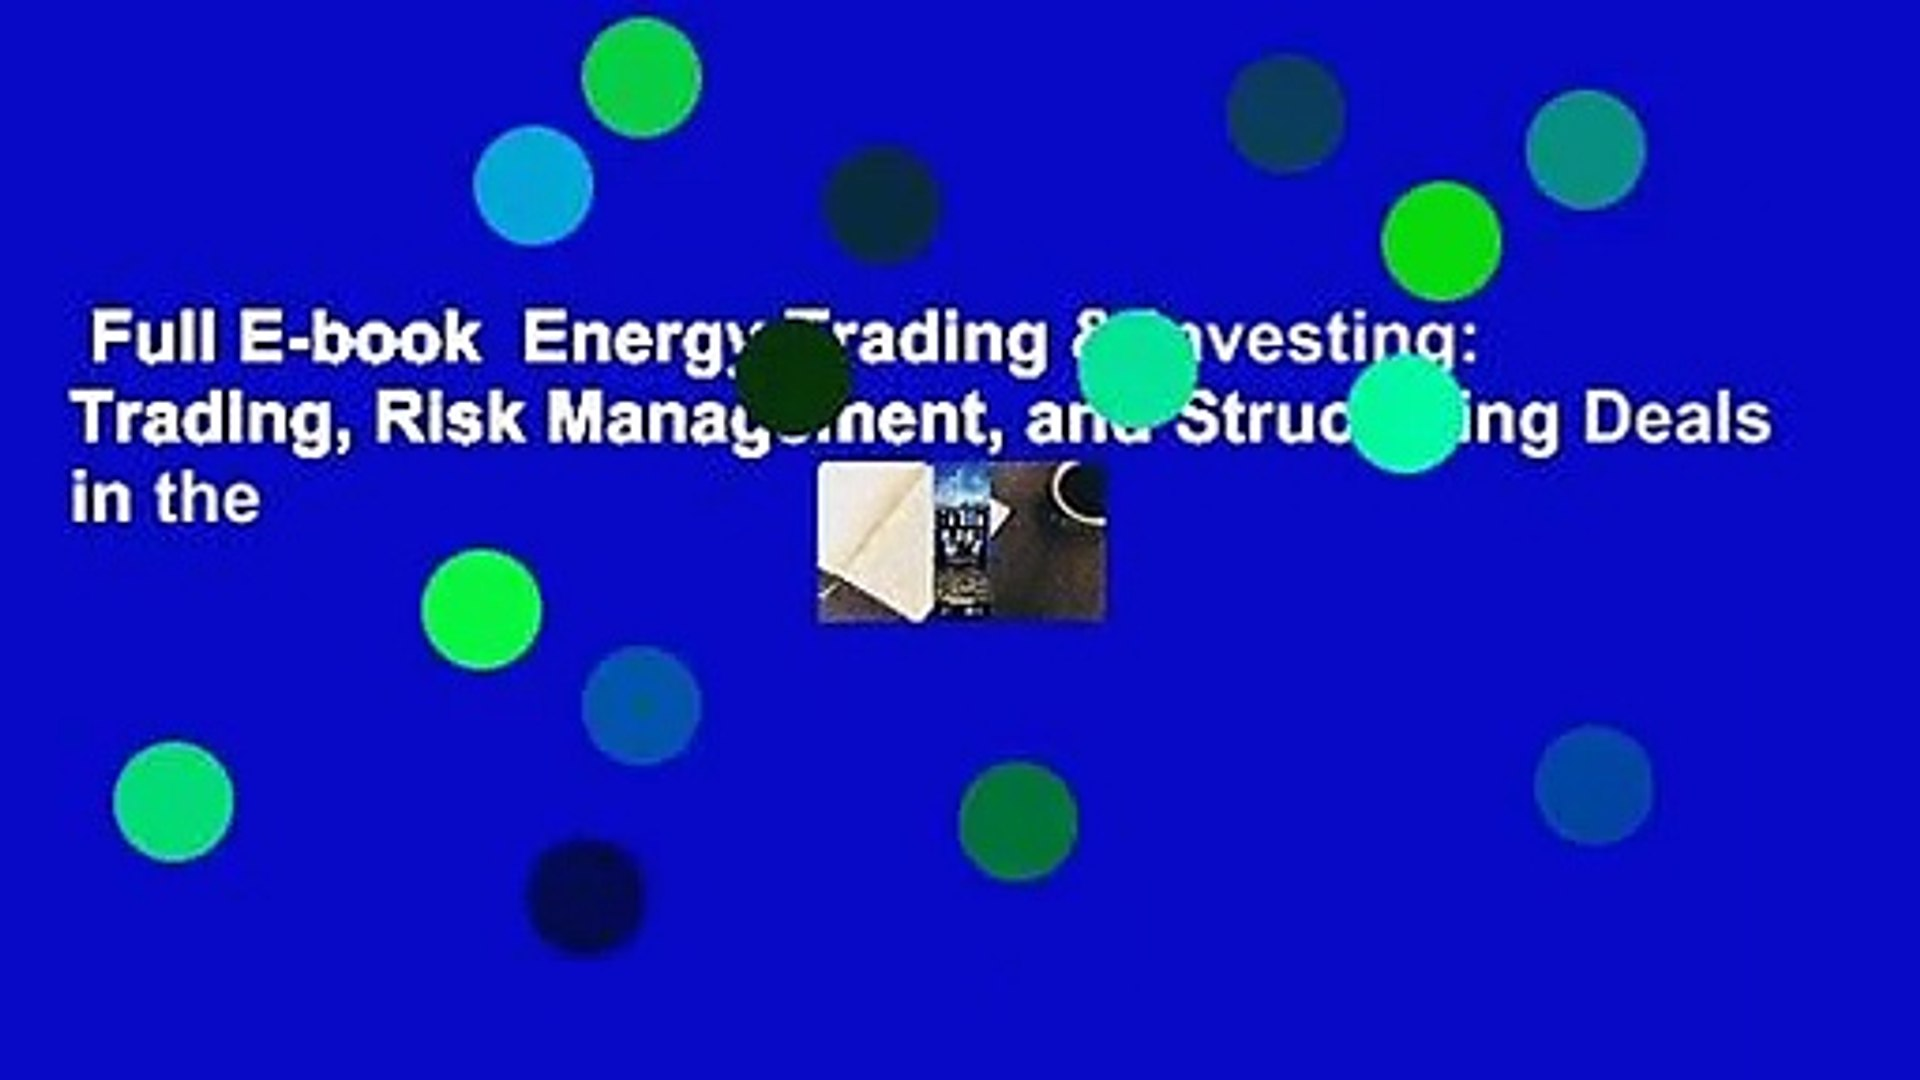 Full E-book  Energy Trading & Investing: Trading, Risk Management, and Structuring Deals in the